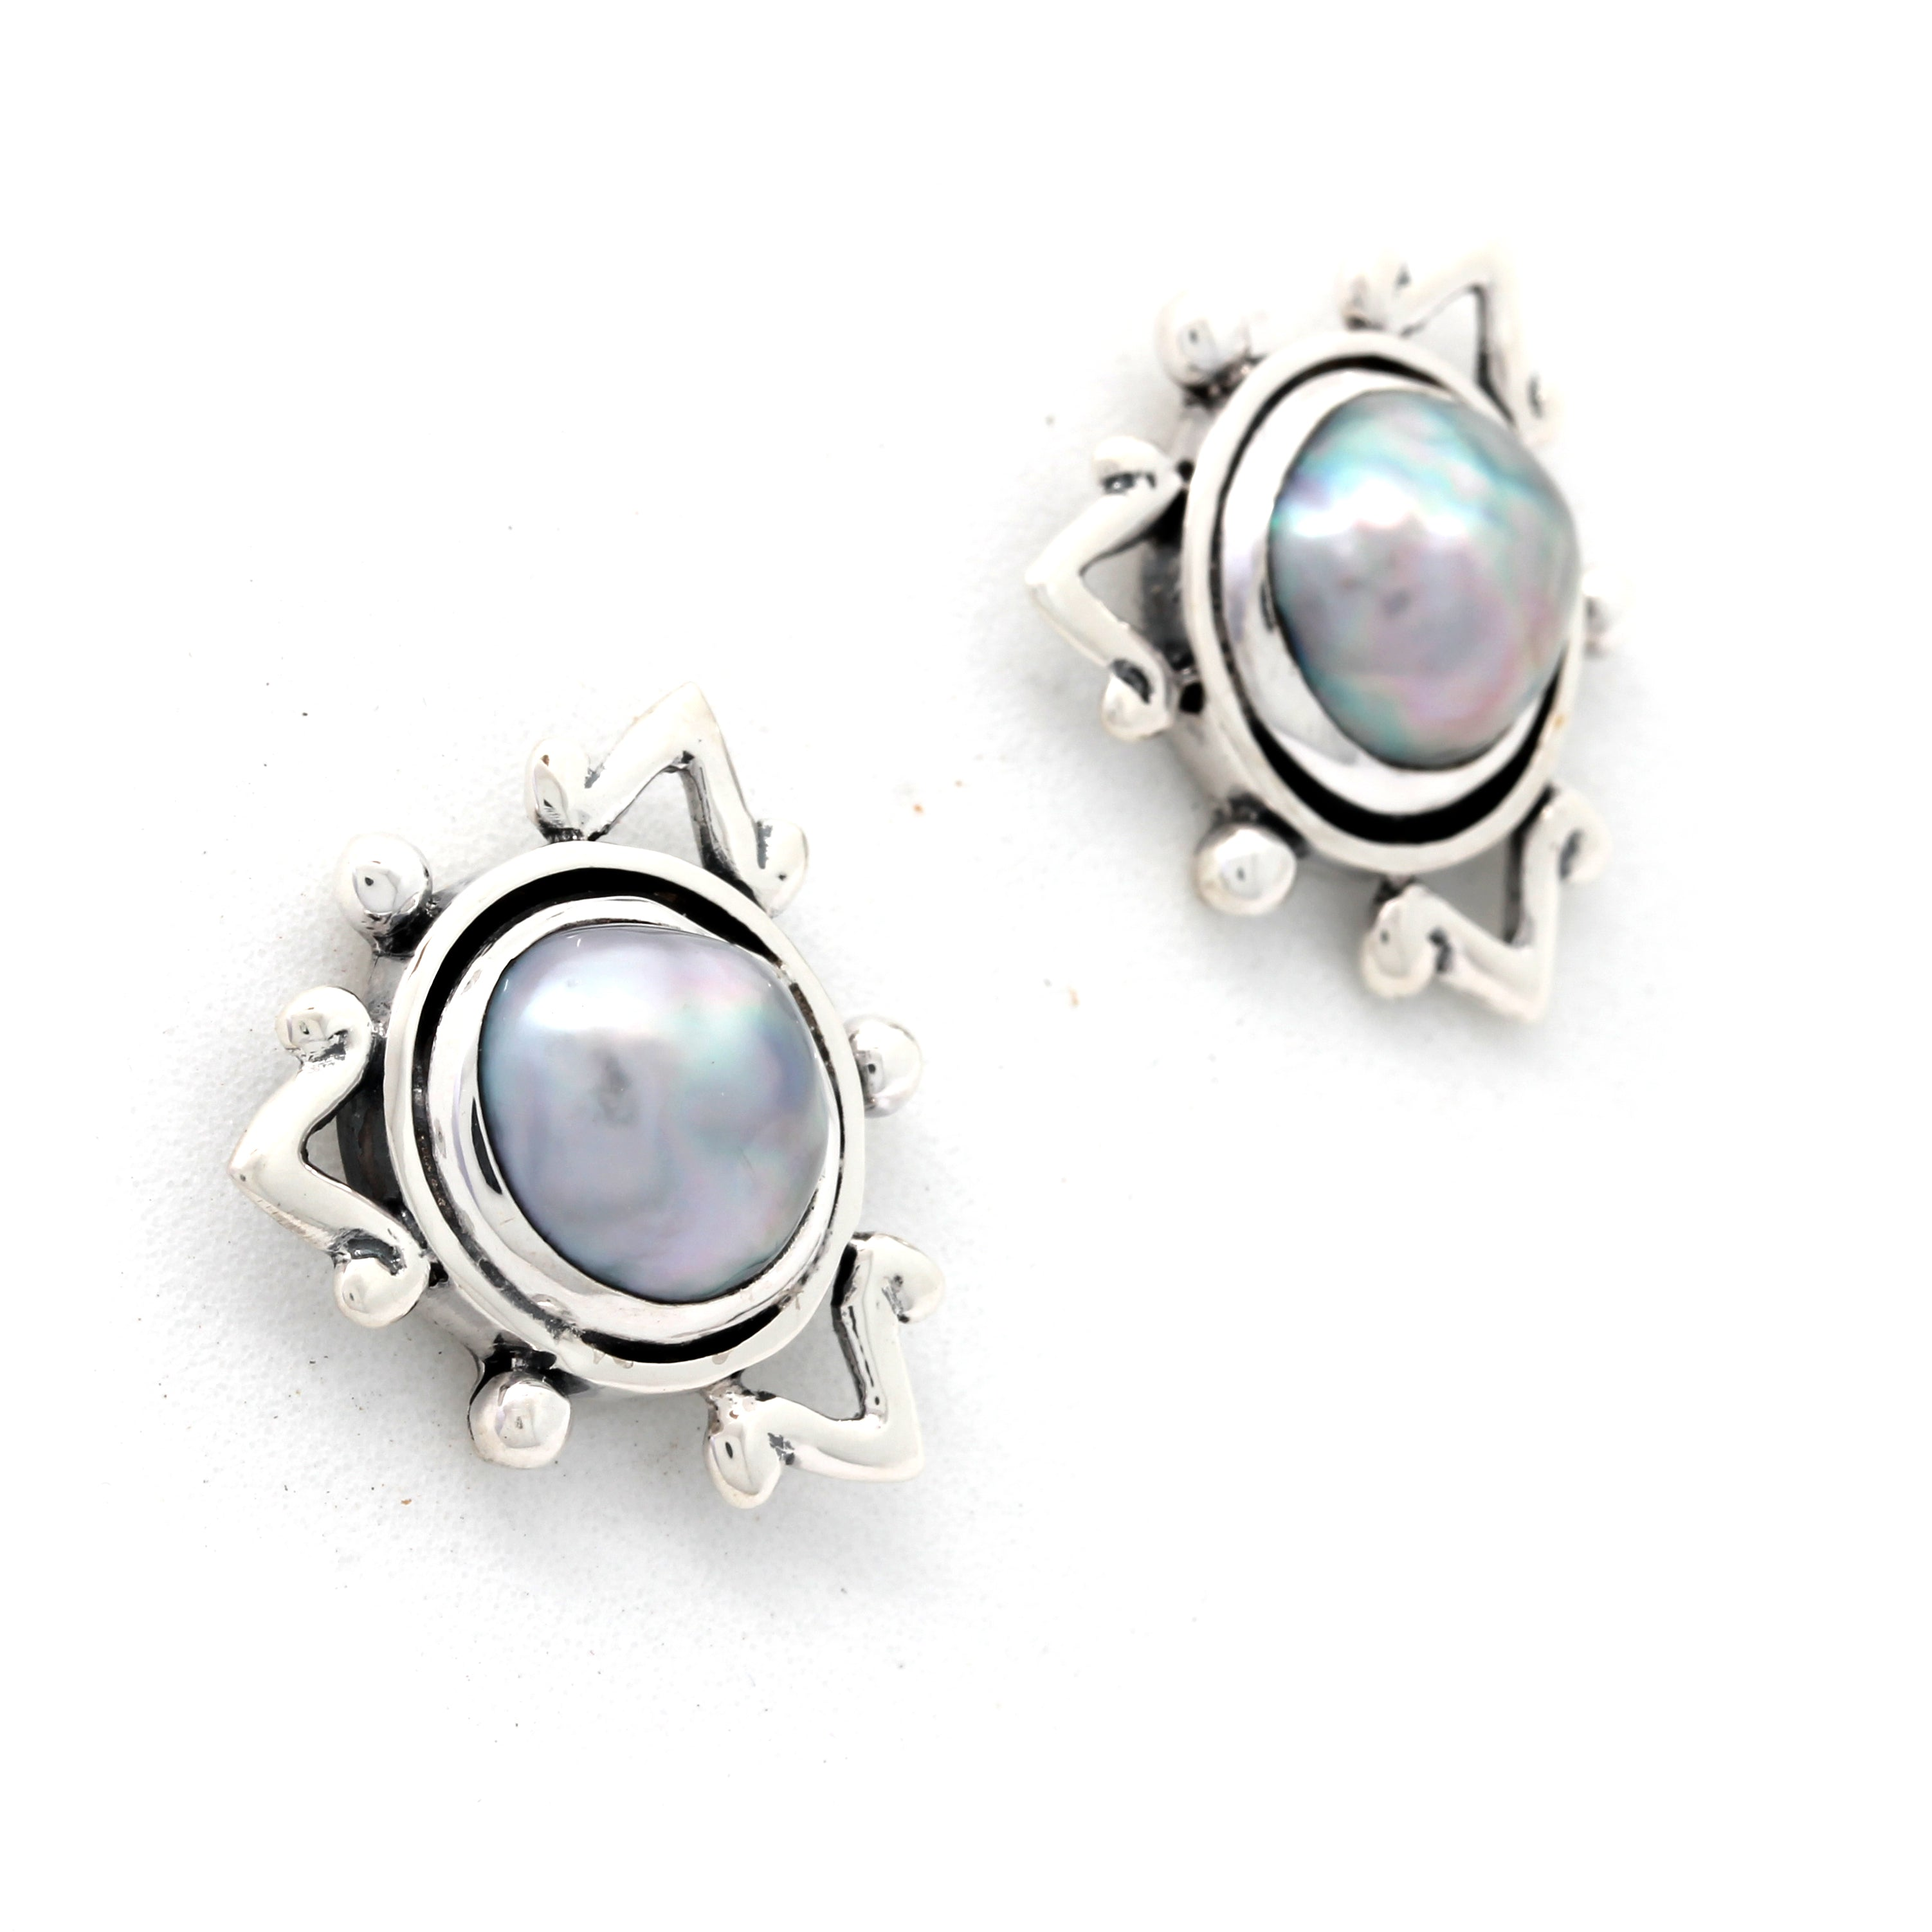 Silver Earrings with Cortez Mabe Pearls by Priscila Canales